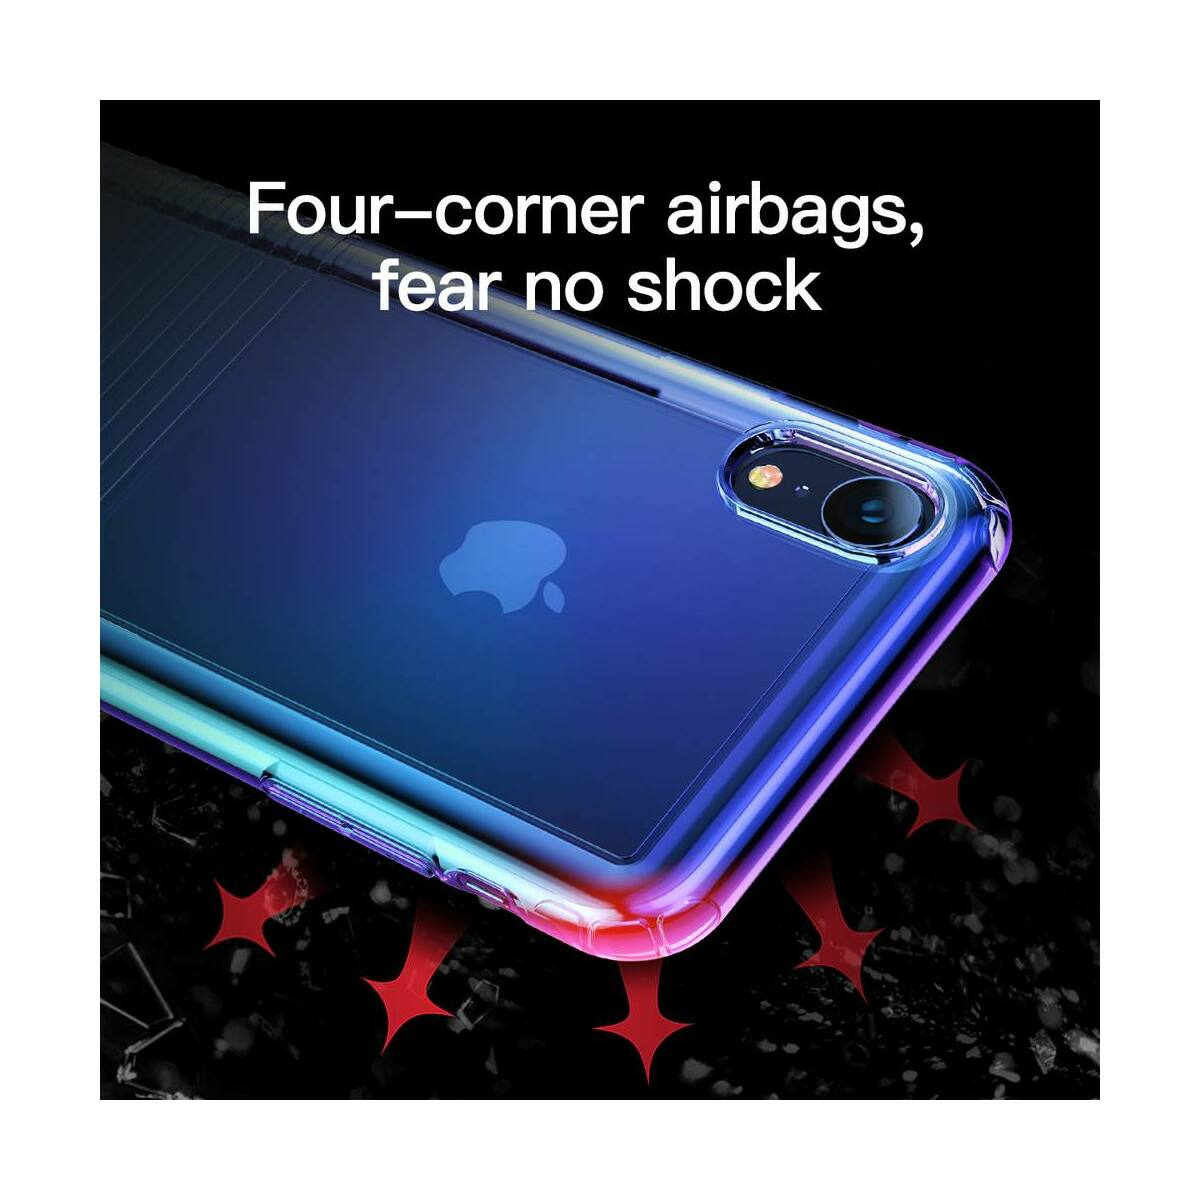 Baseus iPhone XR tok, Colorful Airbag védelem, fekete (WIAPIPH61-XC01)